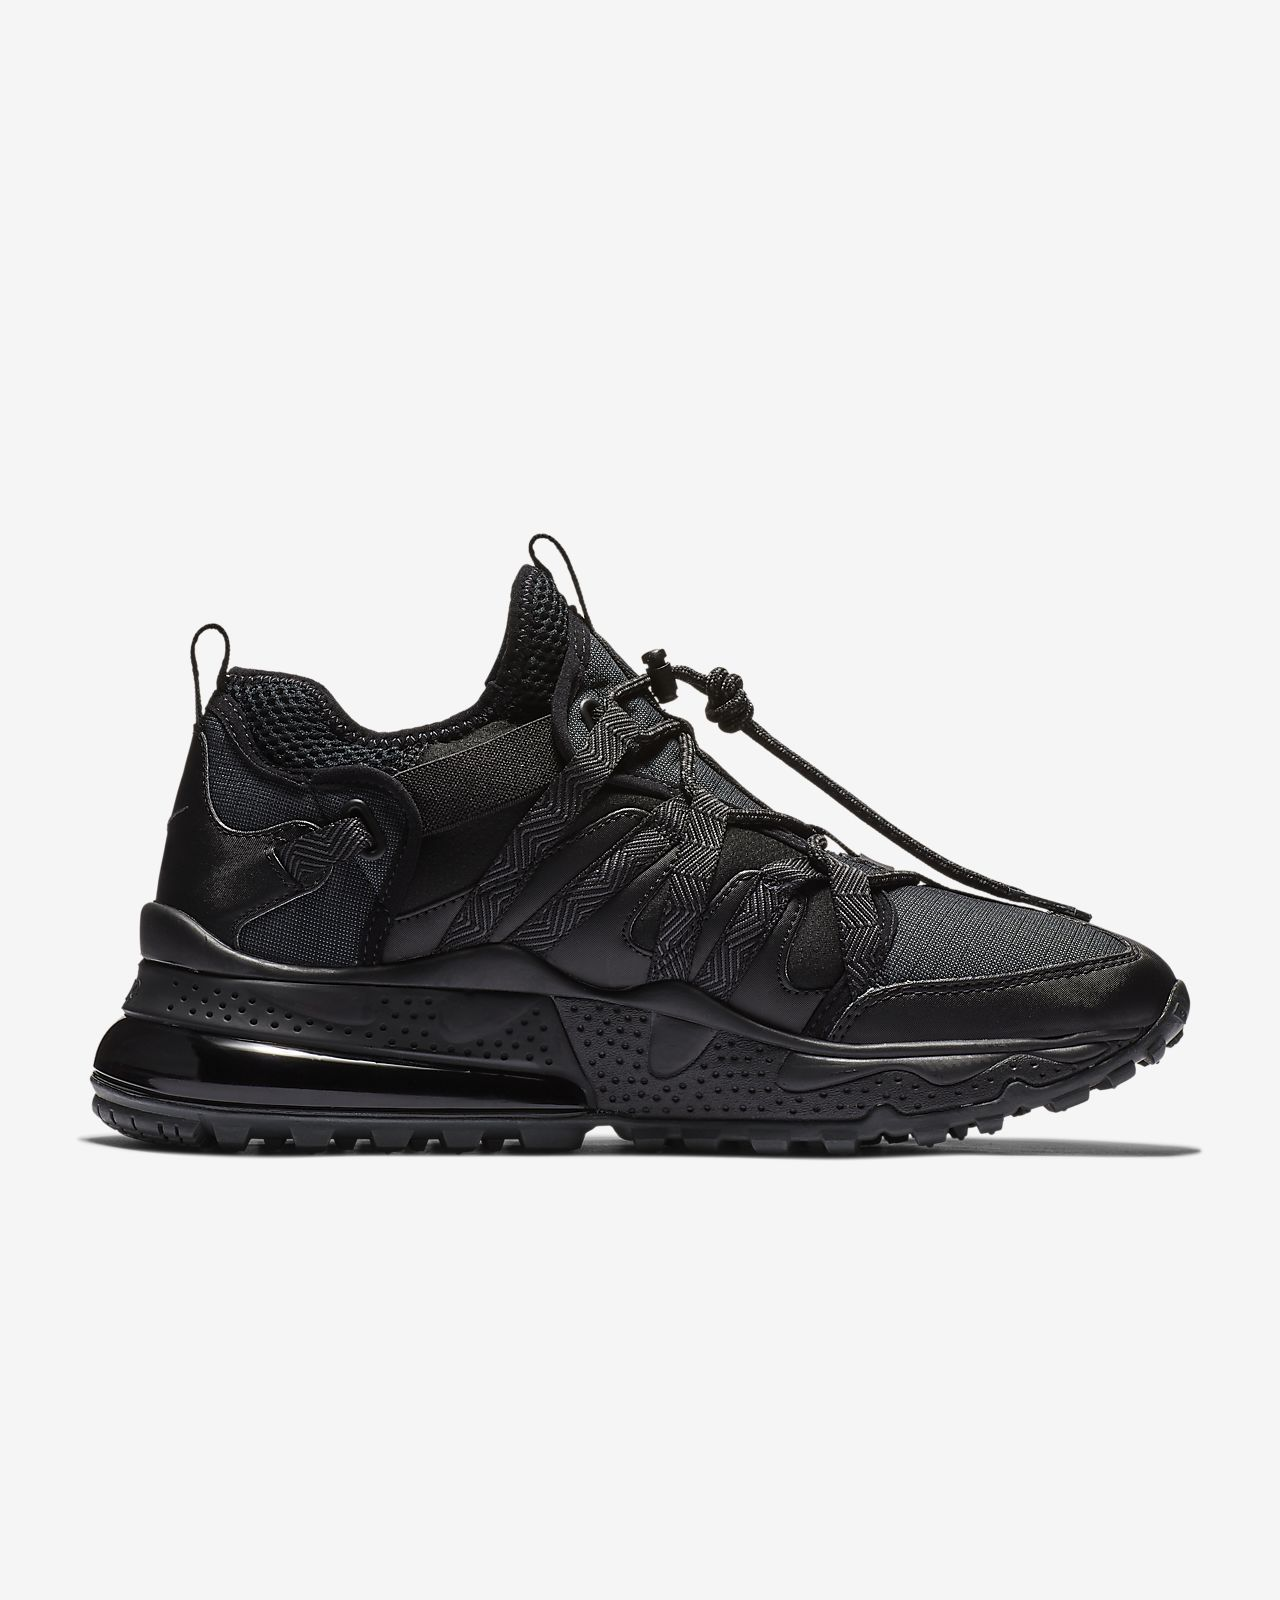 meet 5505f cbd06 ... Nike Air Max 270 Bowfin Men s Shoe